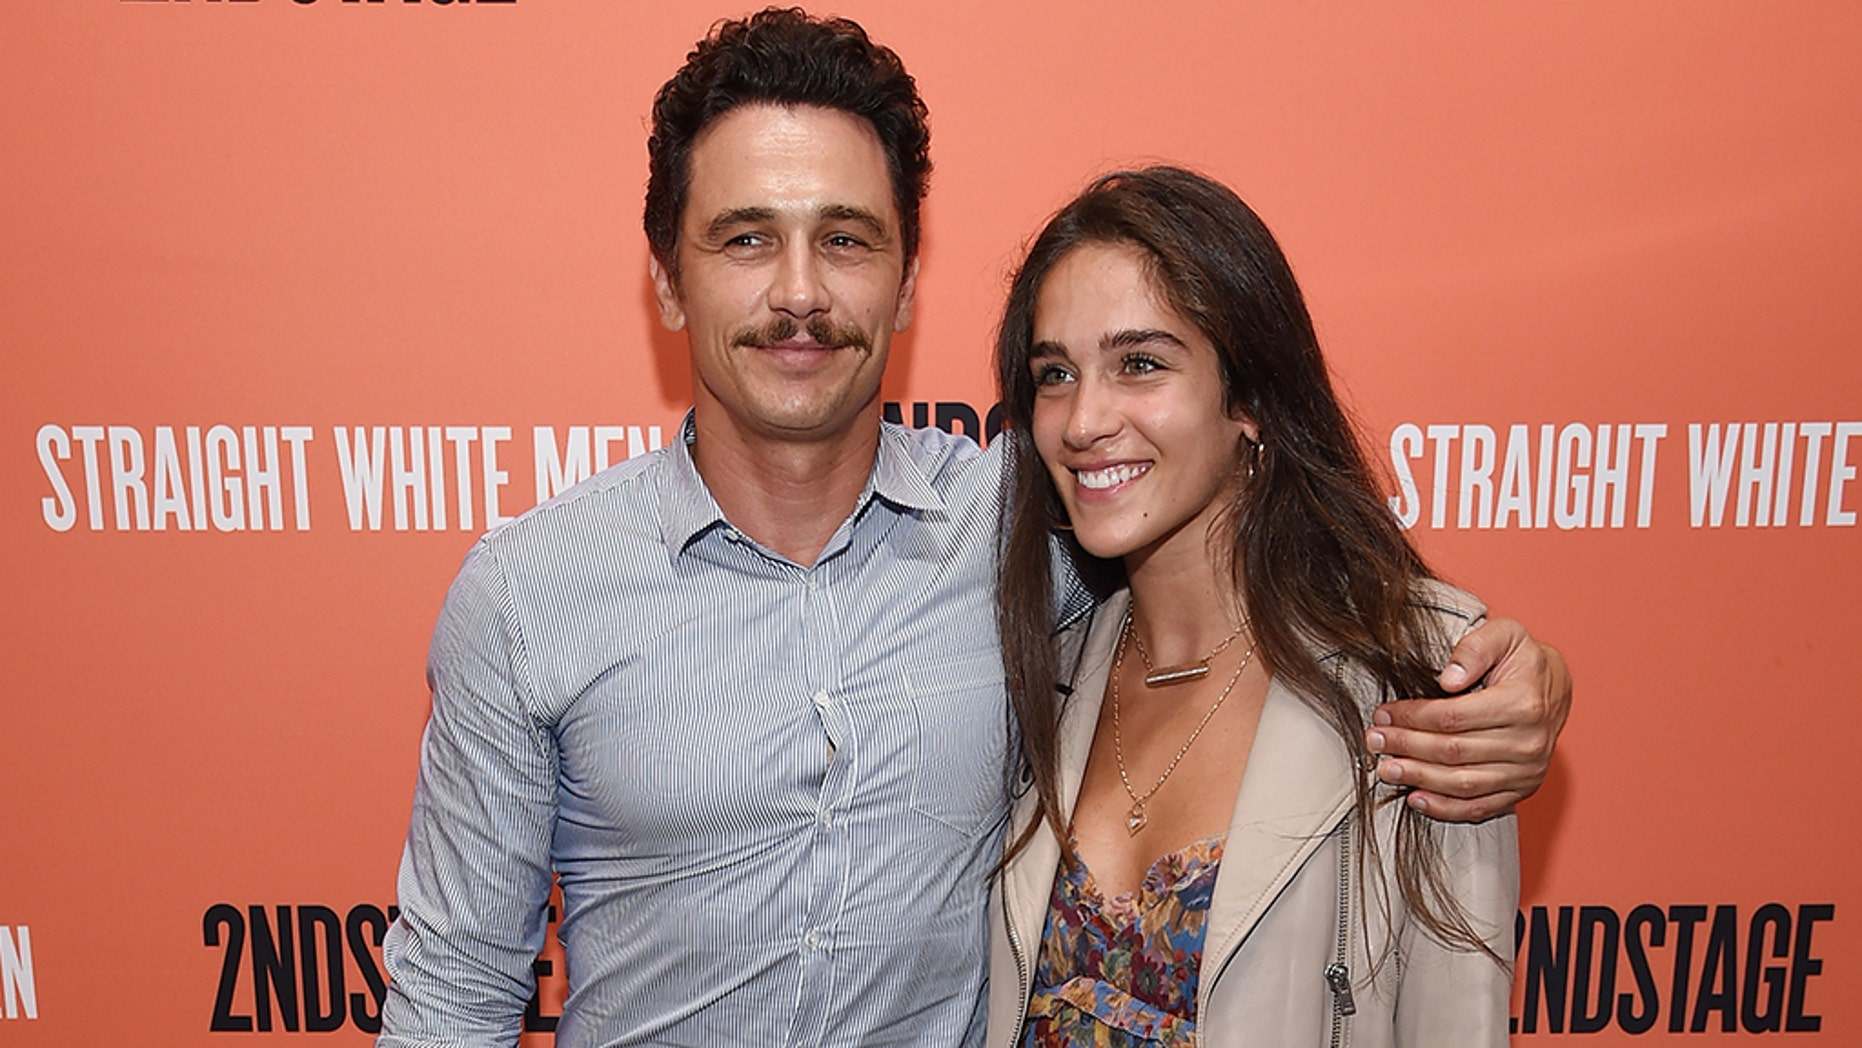 "James Franco and girlfriend Isabel Pakzad attend the opening night of ""Straight White Men"" in NYC on July 23, months after the actor's harassment controversy."